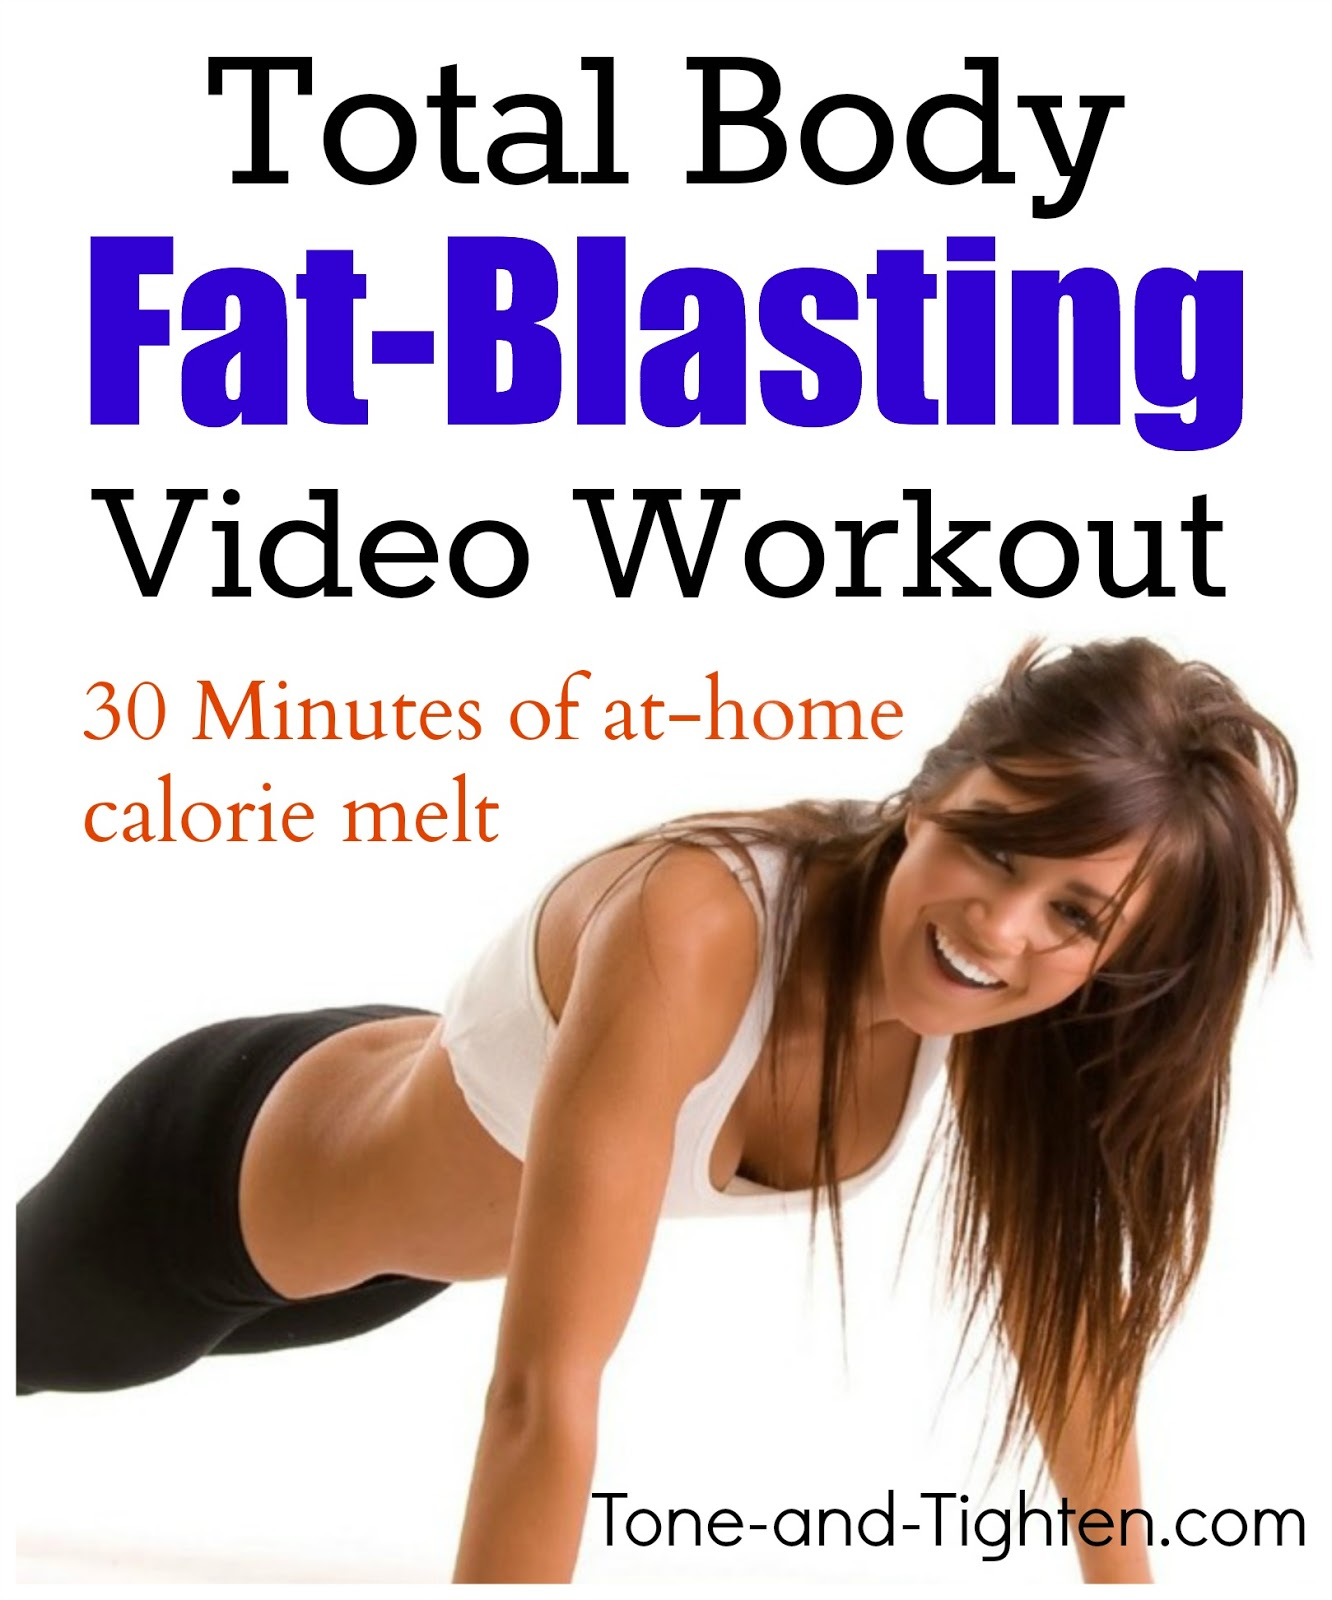 https://tone-and-tighten.com/2014/02/30-minute-fat-burning-cardio-video-workout.html